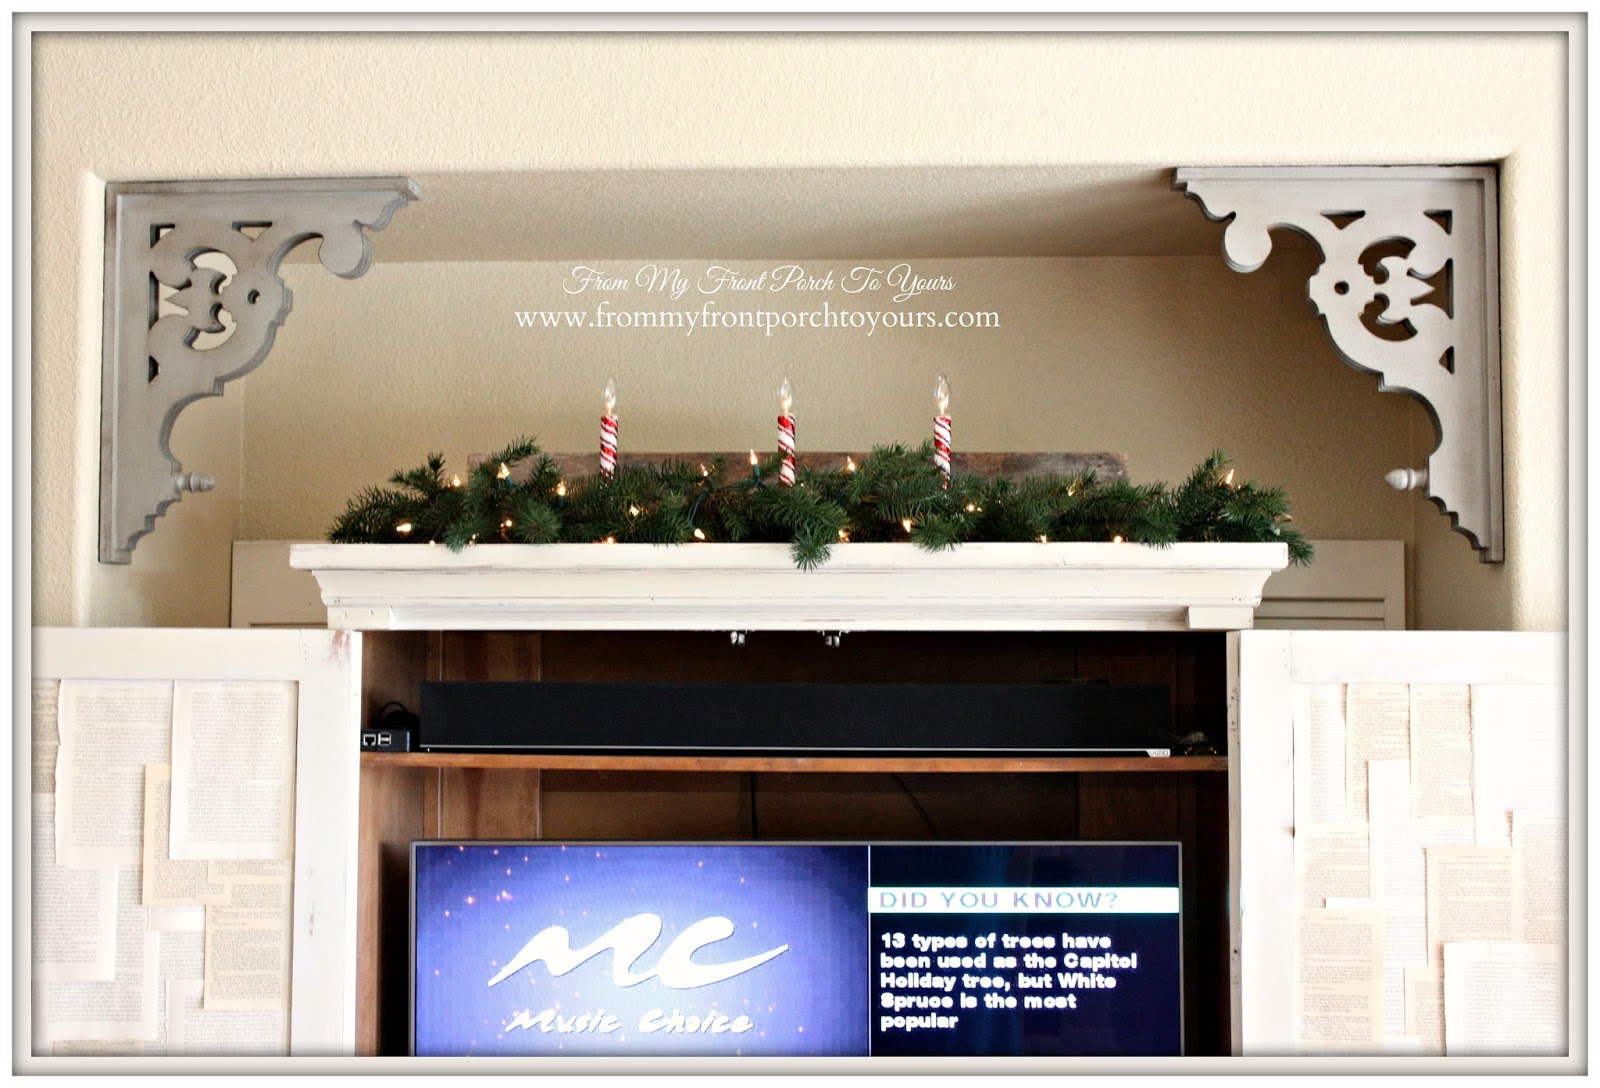 Farmhouse- Vintage- Christmas -Living Room-Corbels-French Country- From My Front Porch To Yours